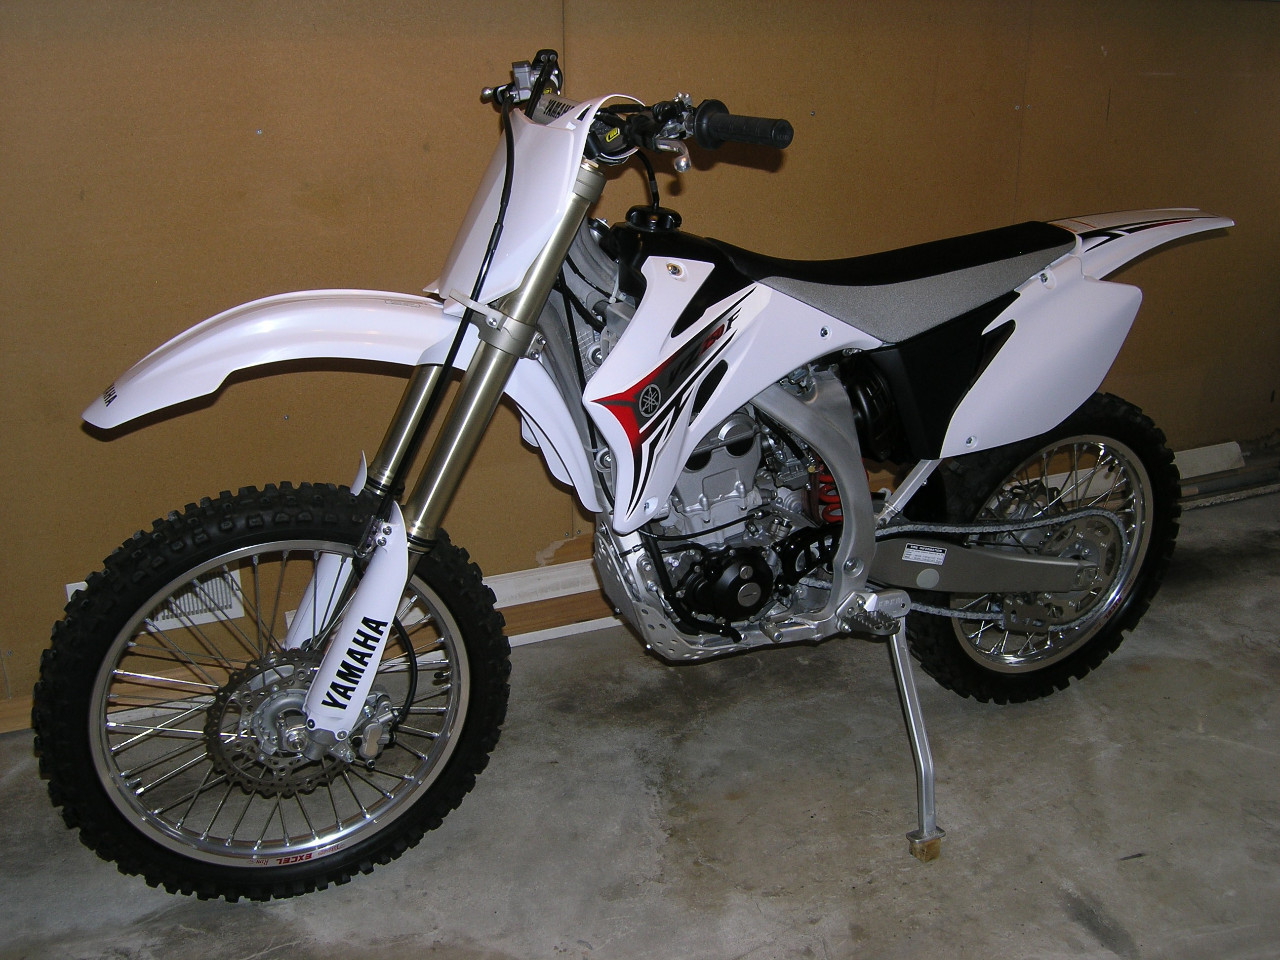 Dirt Bike Motorcycles For Sale - Cycle Trader